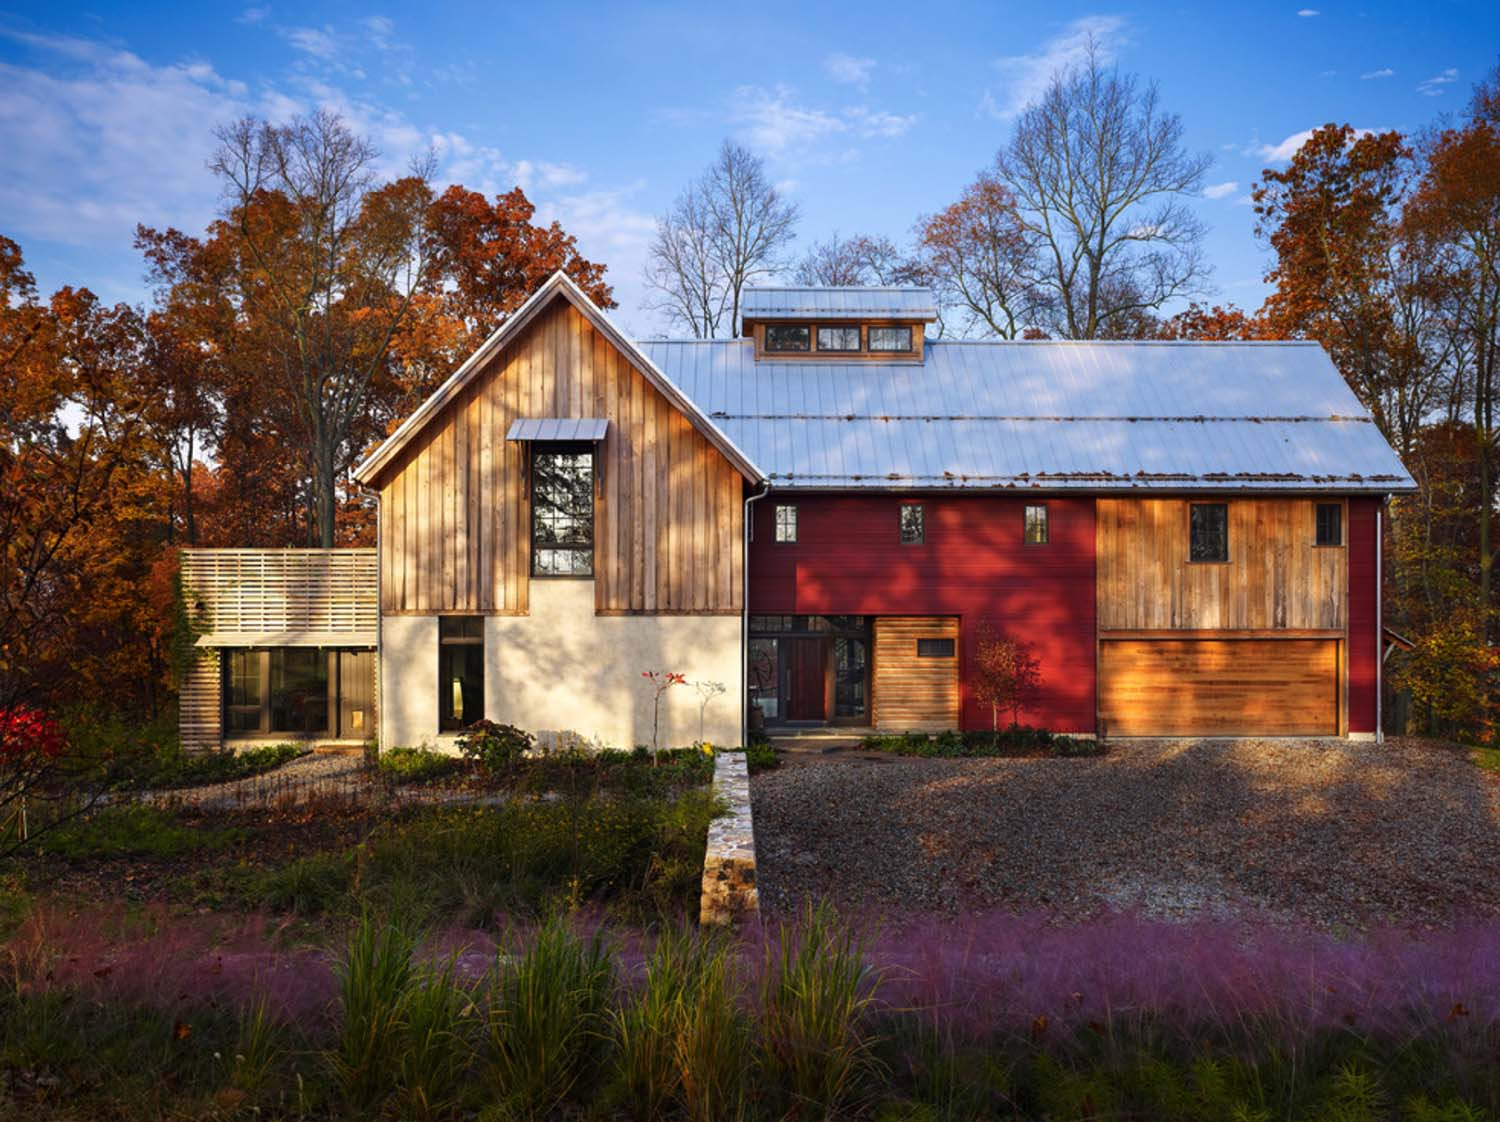 Sustainable modern rustic barn house in pennsylvania for Modern rustic house designs